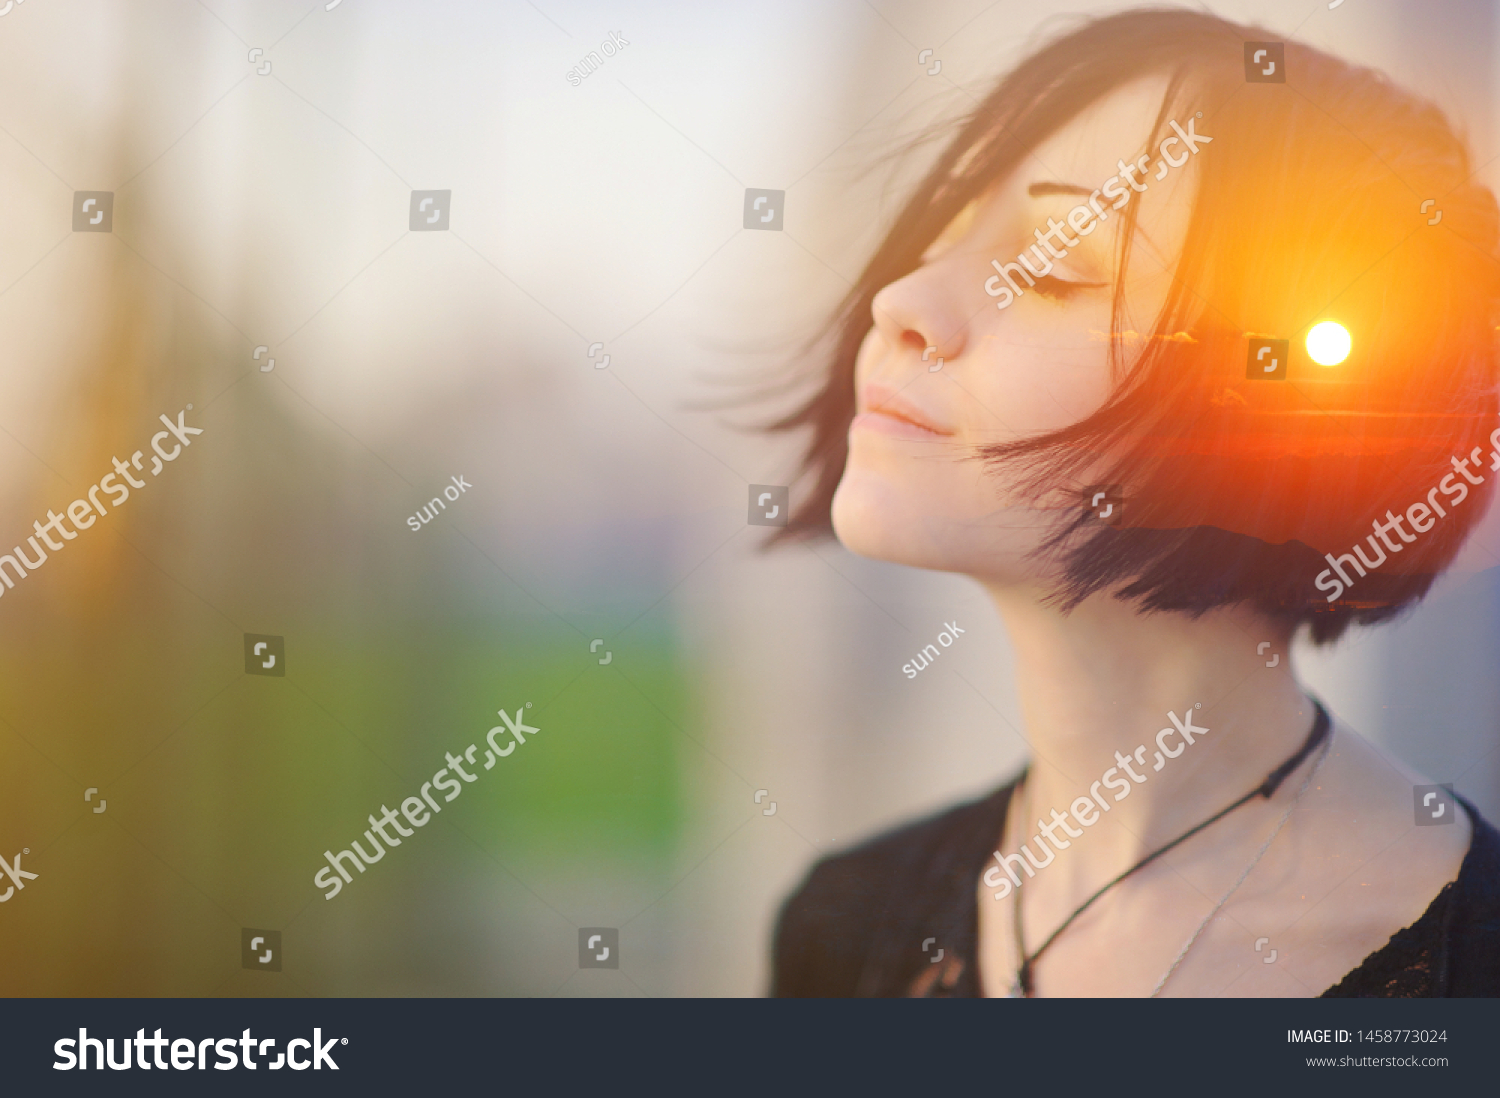 Double multiply exposure portrait of a dreamy cute woman meditating outdoors with eyes closed, combined with photograph of nature, sunrise or sunset, closeup. Psychology freedom power of mind concept #1458773024